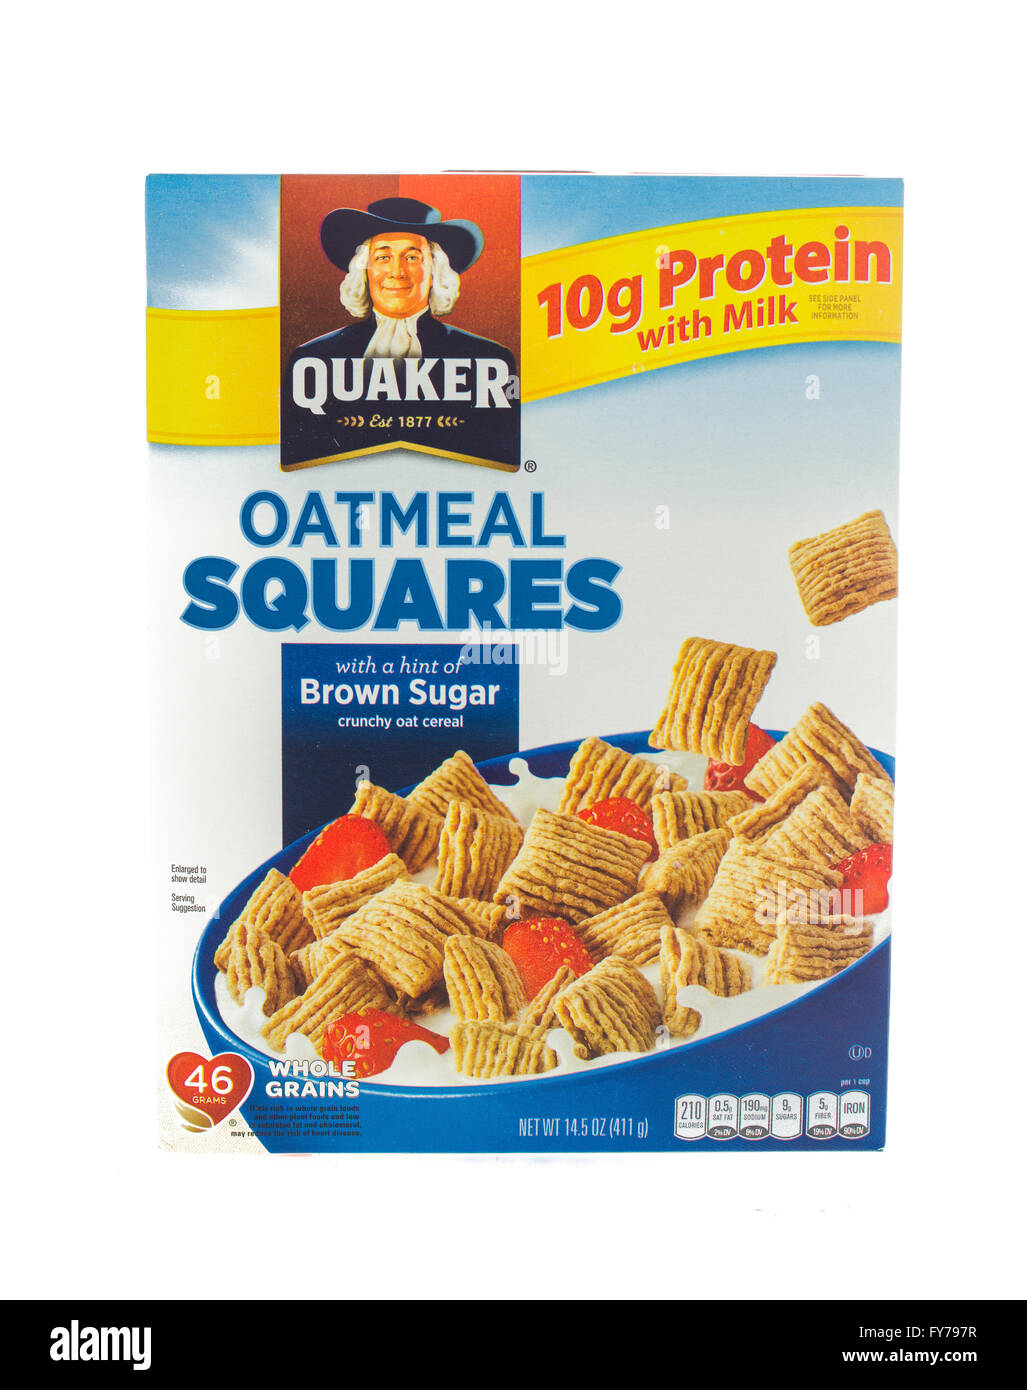 Winneconne, WI - 5  February 2015: Box of Oatmeal Squares cereal.  Oatmeal Squares is owned by the Quacker Oats Stock Photo